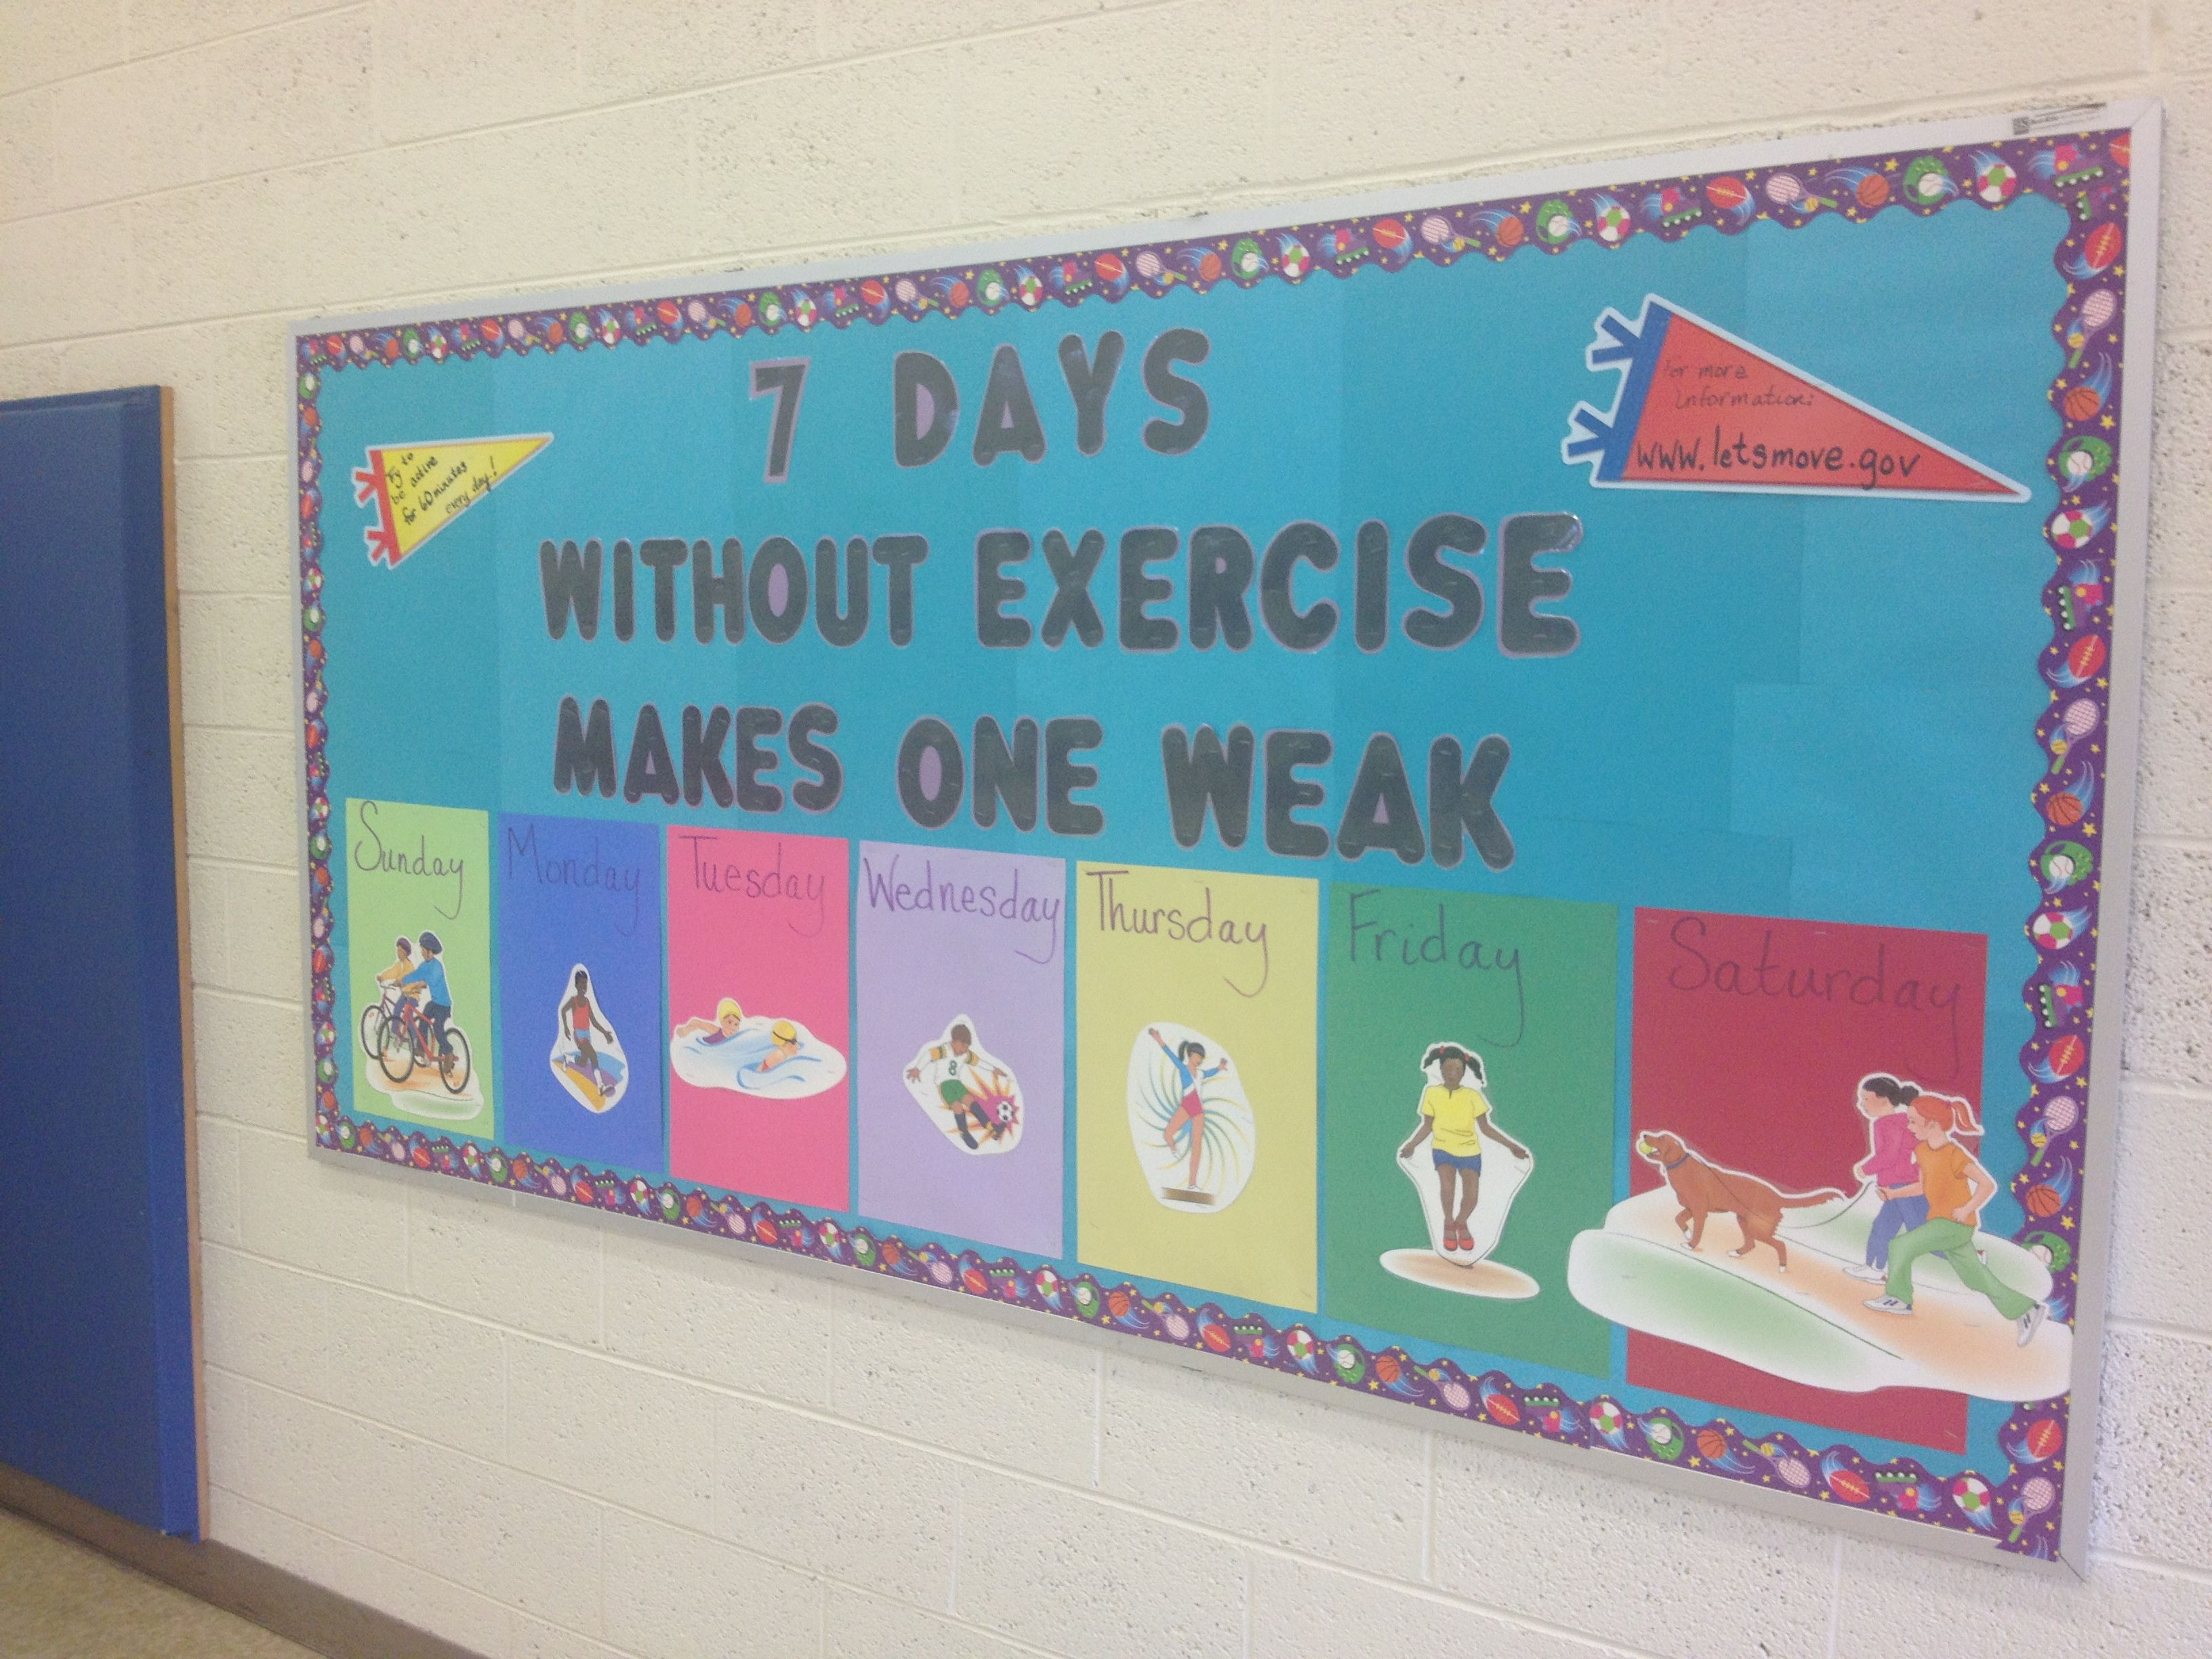 7 Days Without Exercise Makes One Weak